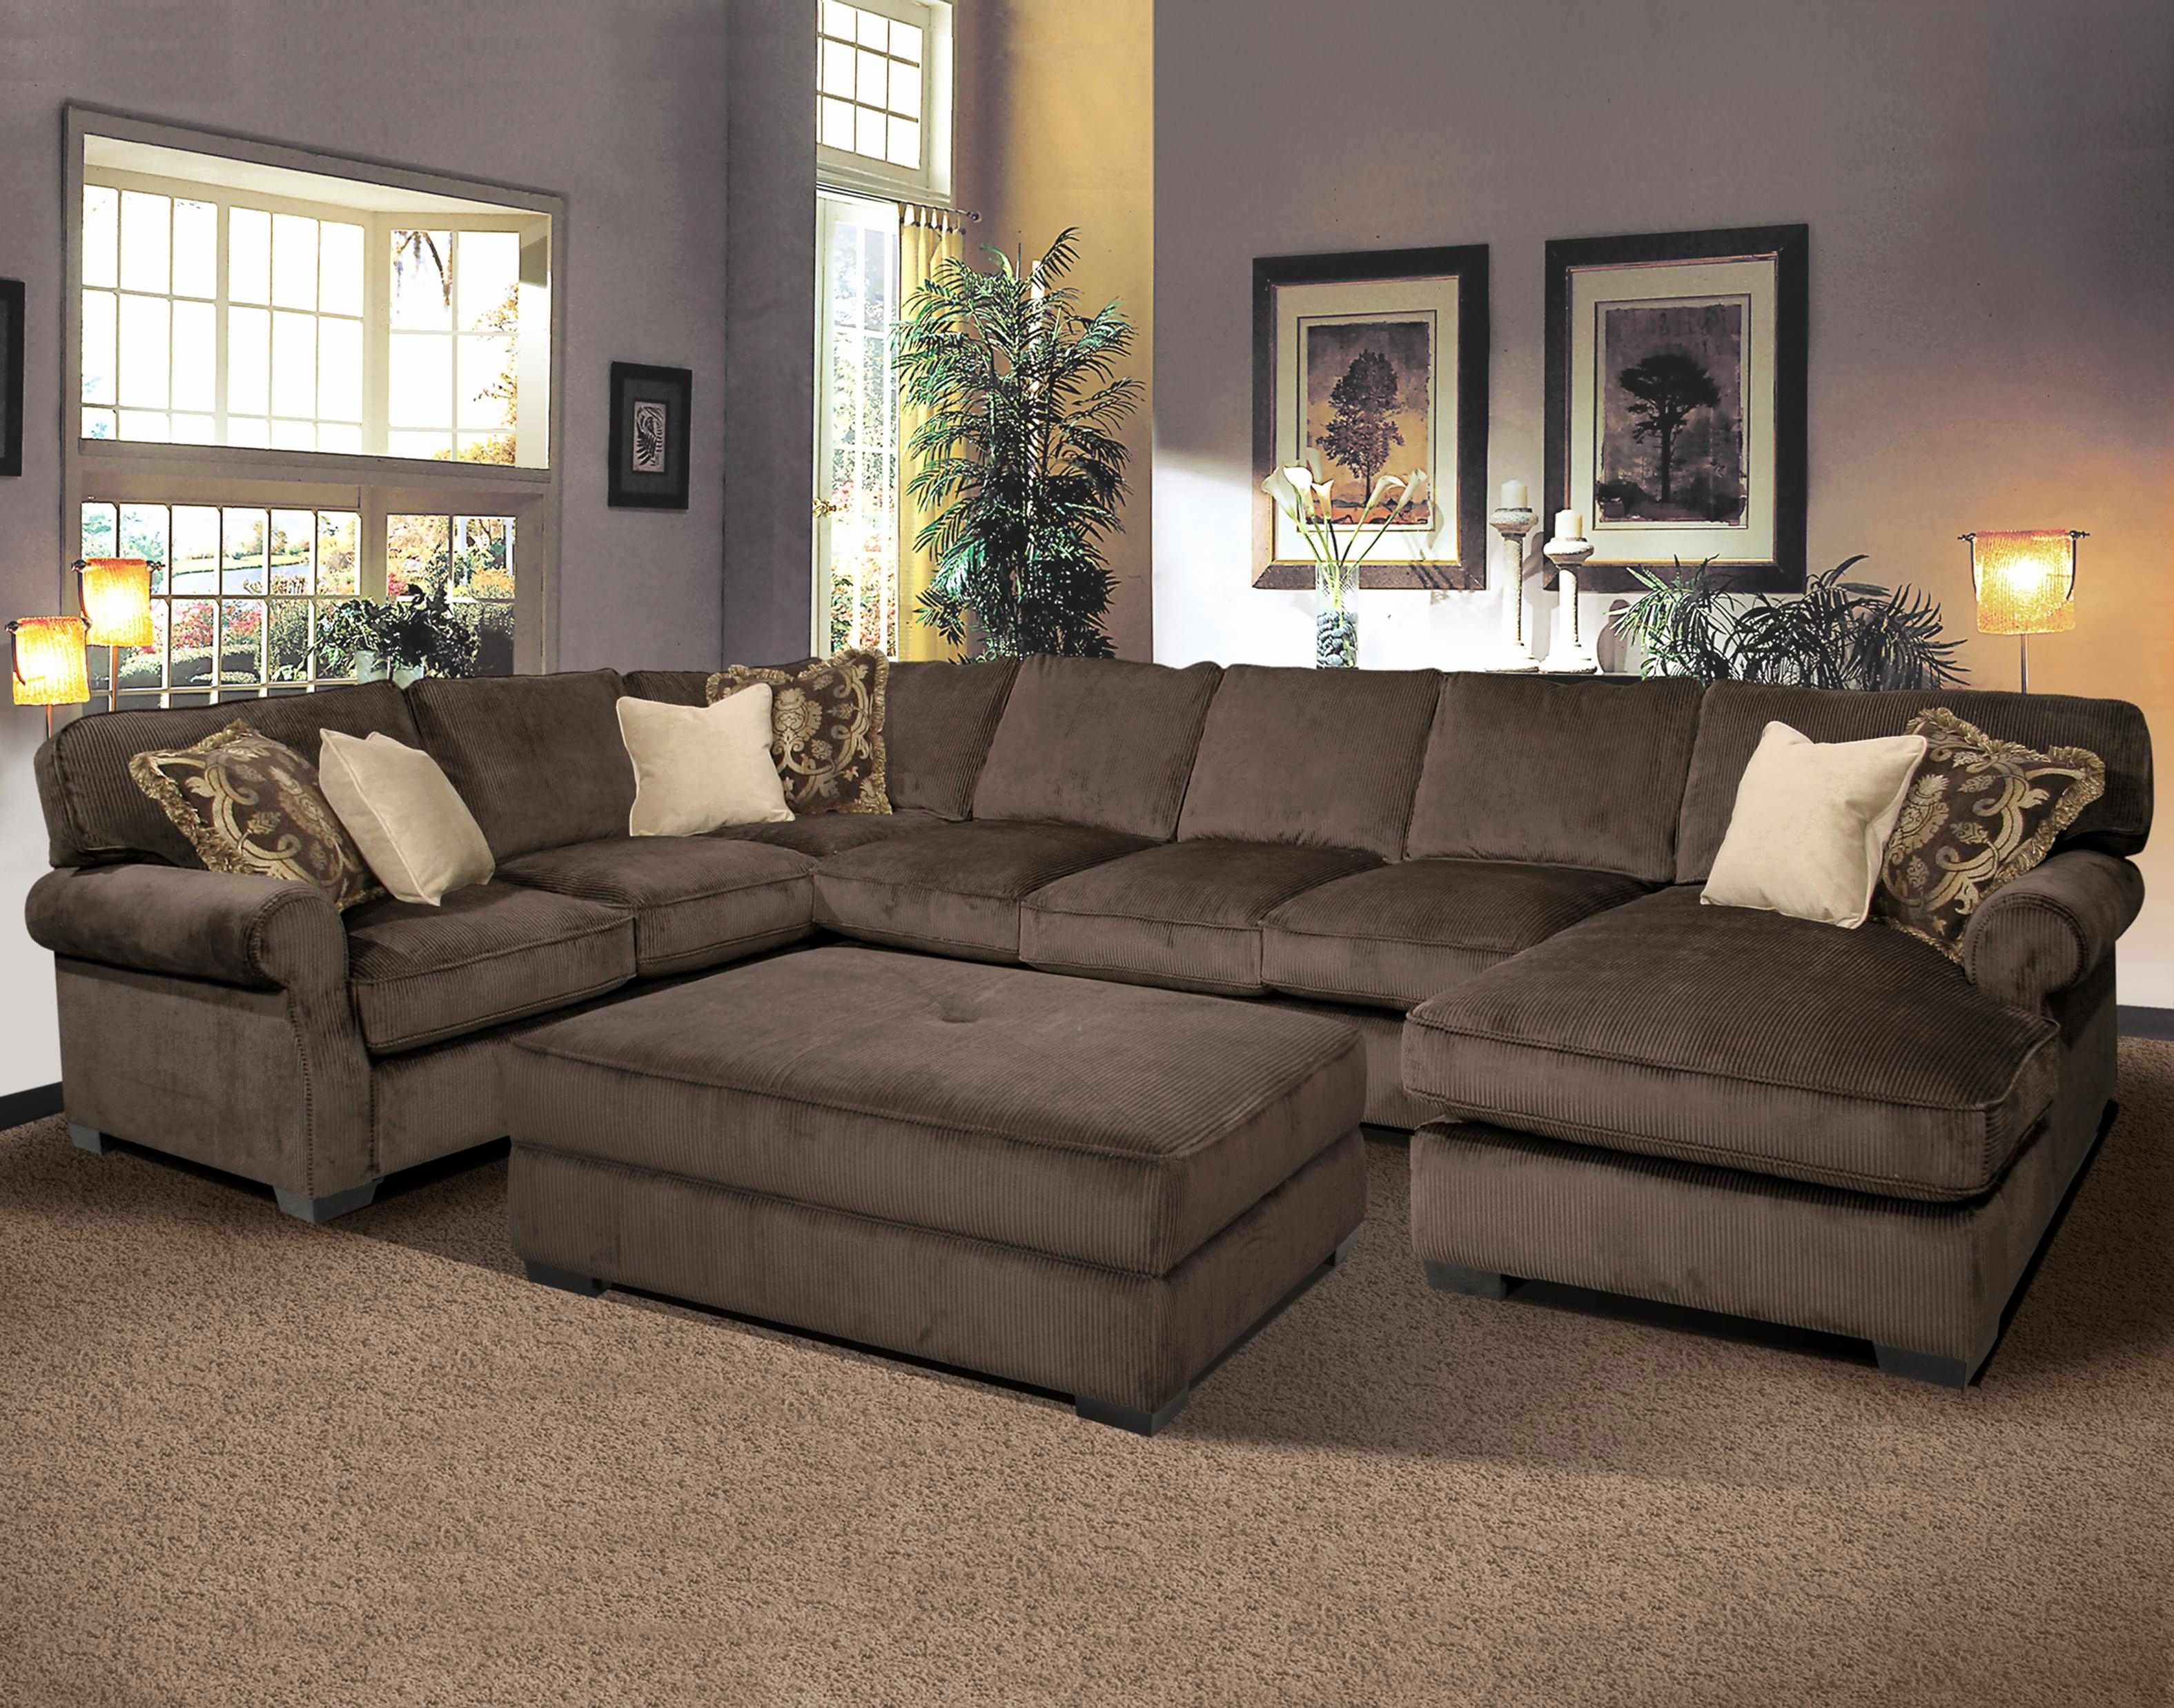 Nice Sectional Sofas Beautiful Decor Outstanding Steam Deep Seat Intended For Deep Seating Sectional Sofas (Photo 6 of 10)